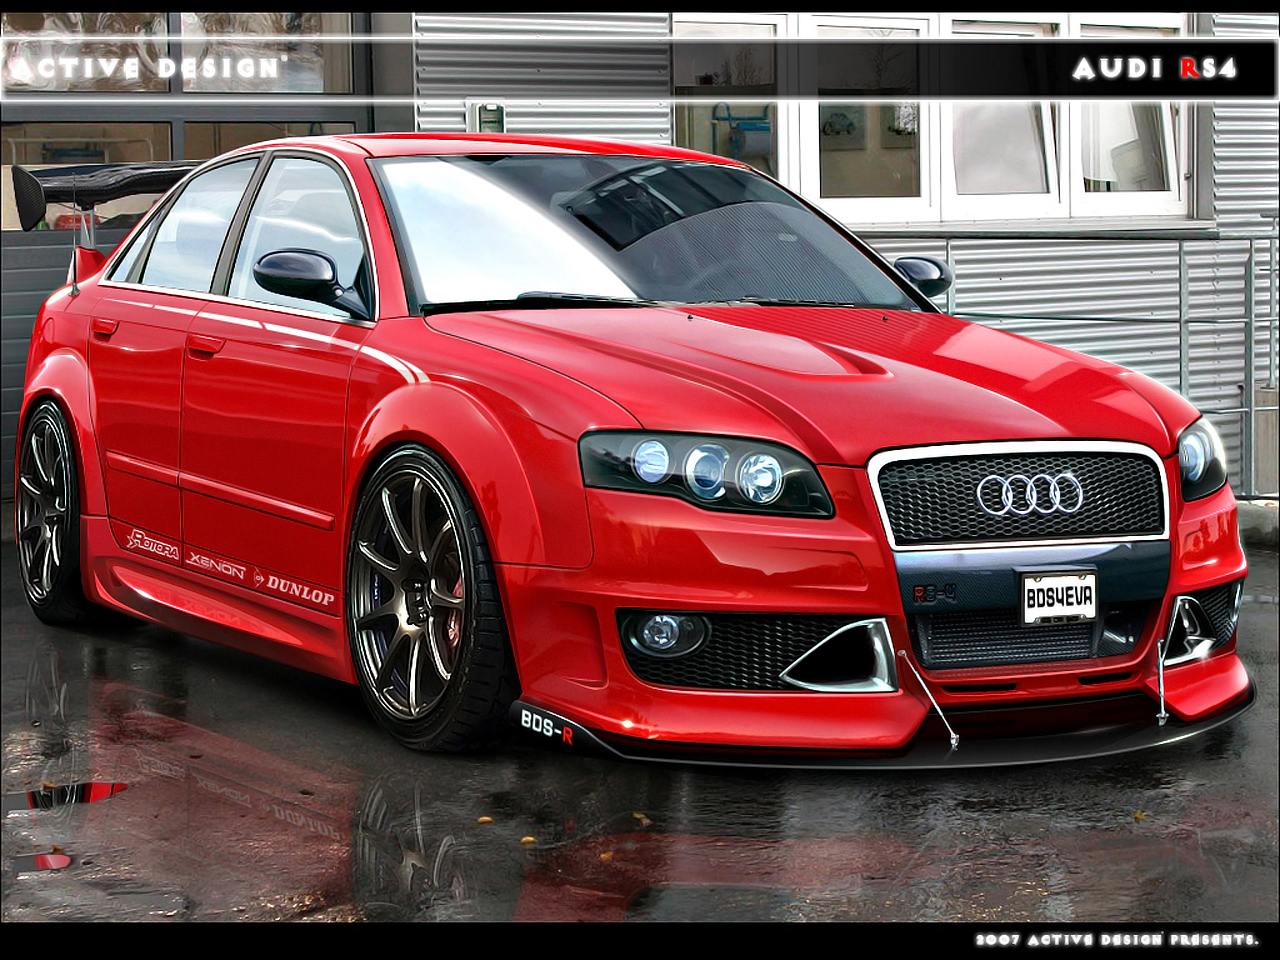 Audi Rs4 Technical Details History Photos On Better